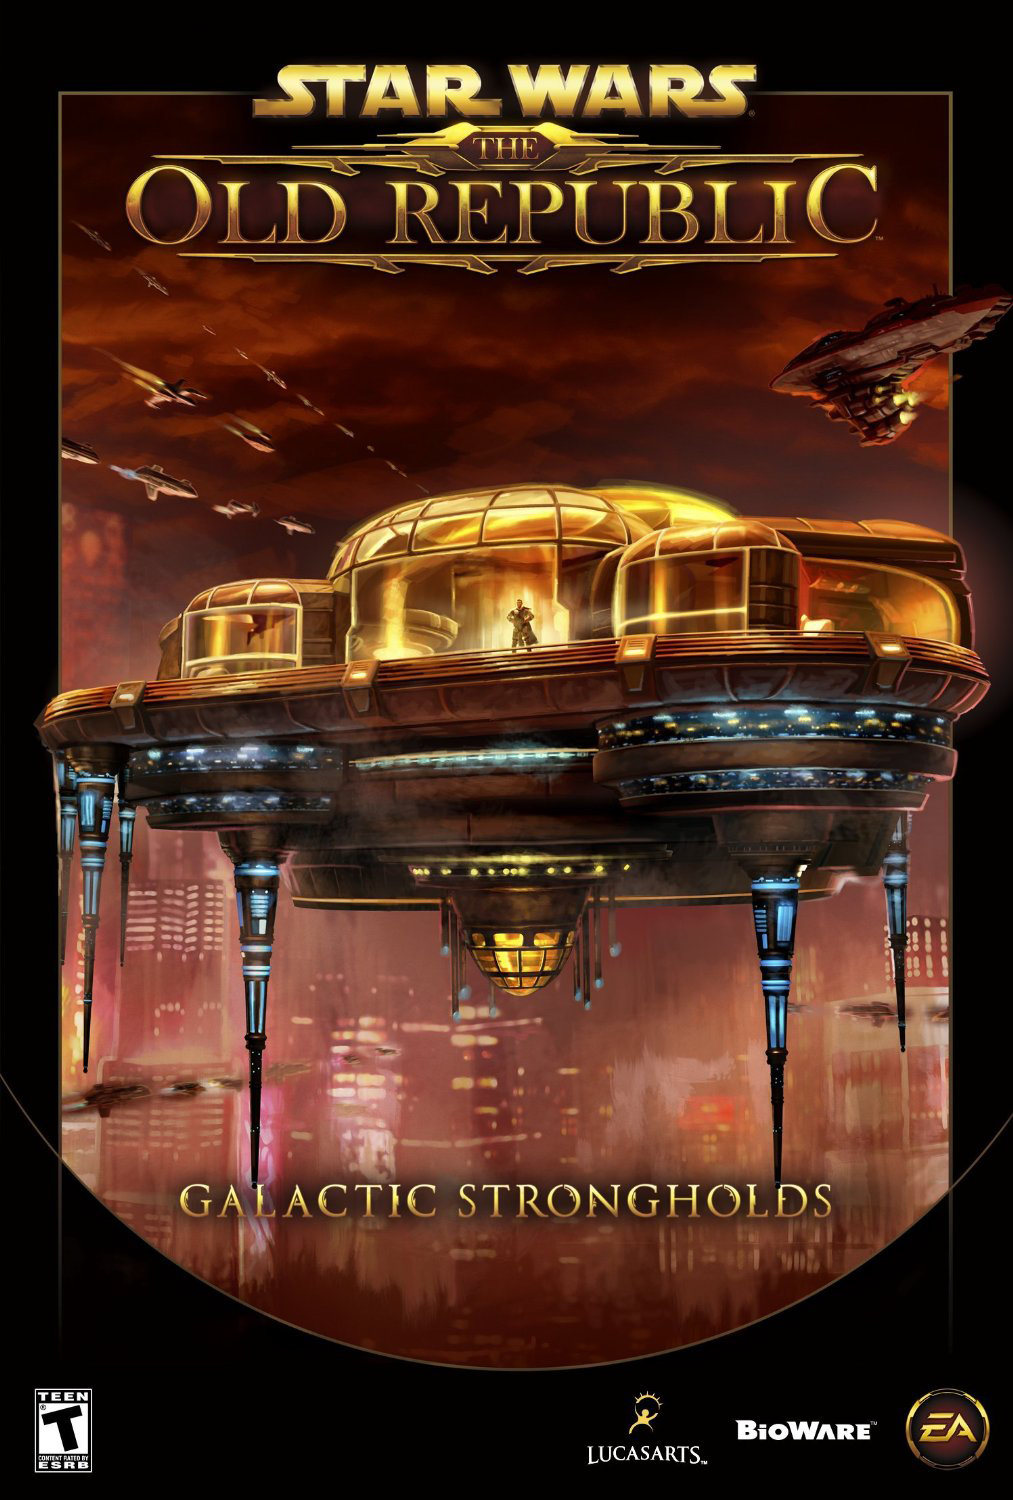 Star Wars The Old Republic Galactic Strongholds Wookieepedia - Star wars old republic us map